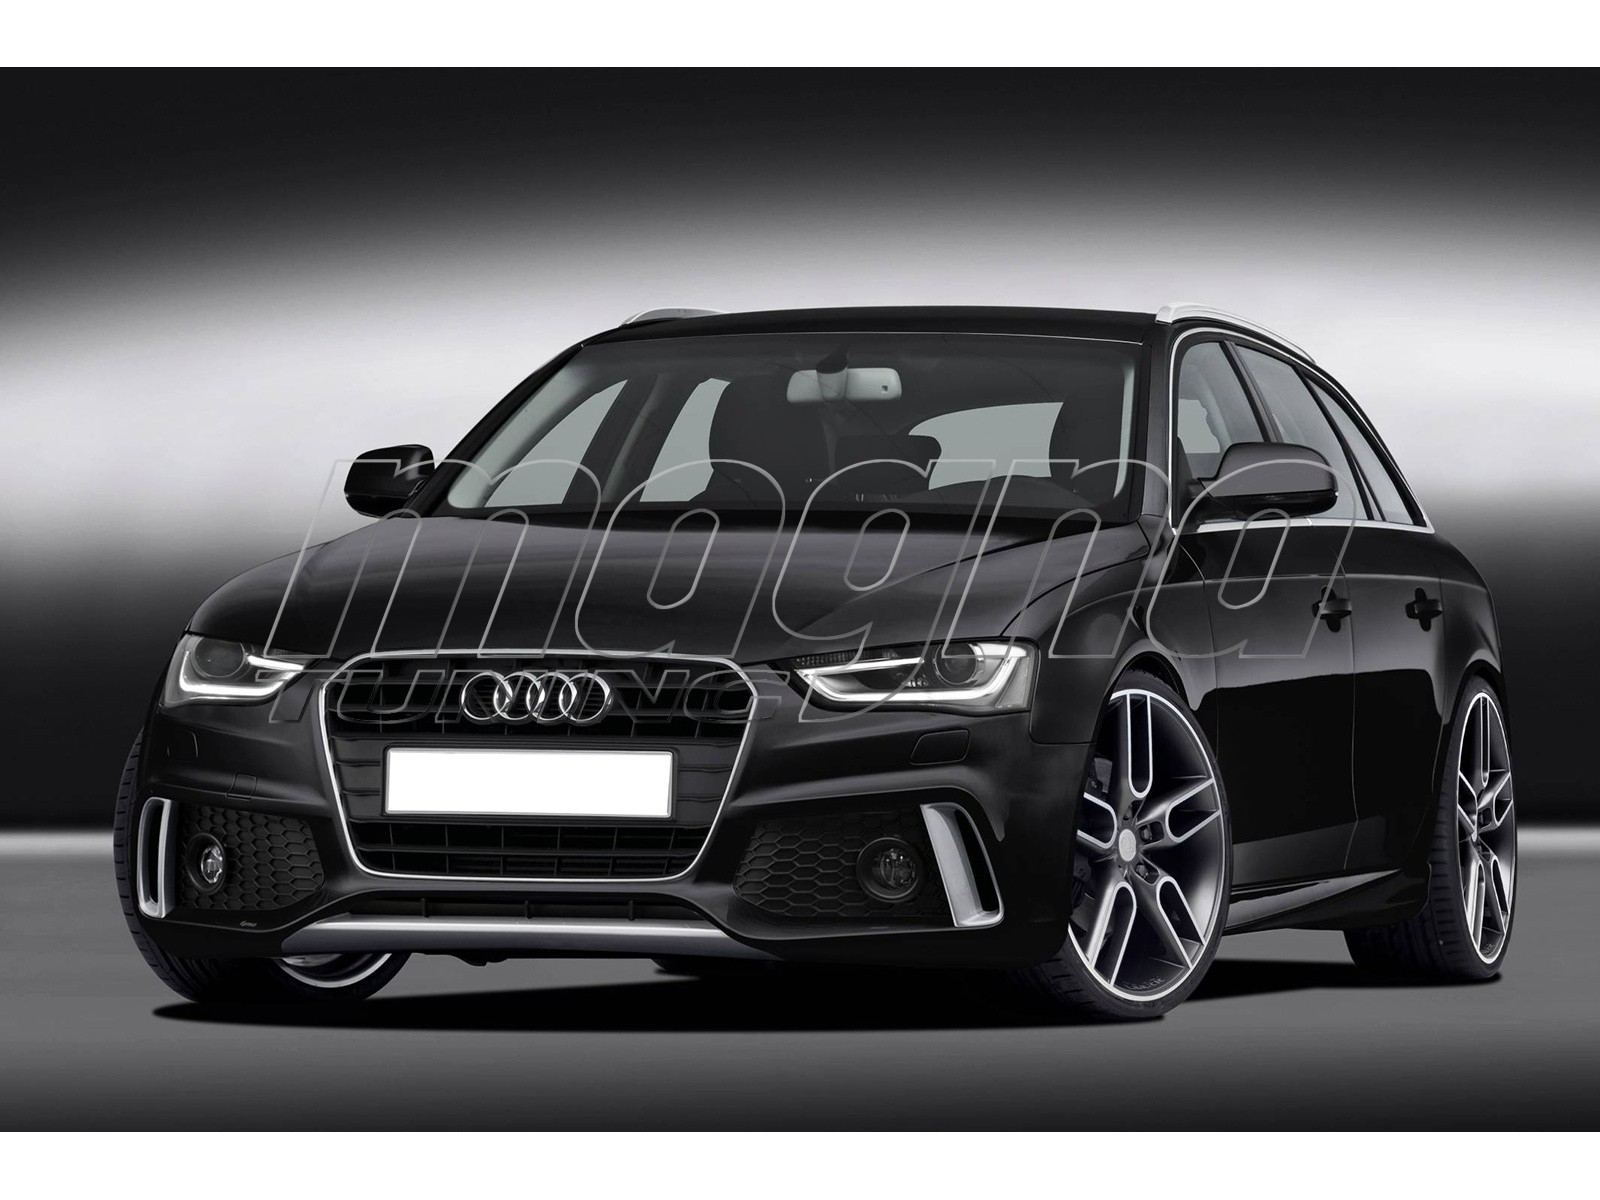 Audi A4 B8 8k Facelift Avant Cx Body Kit